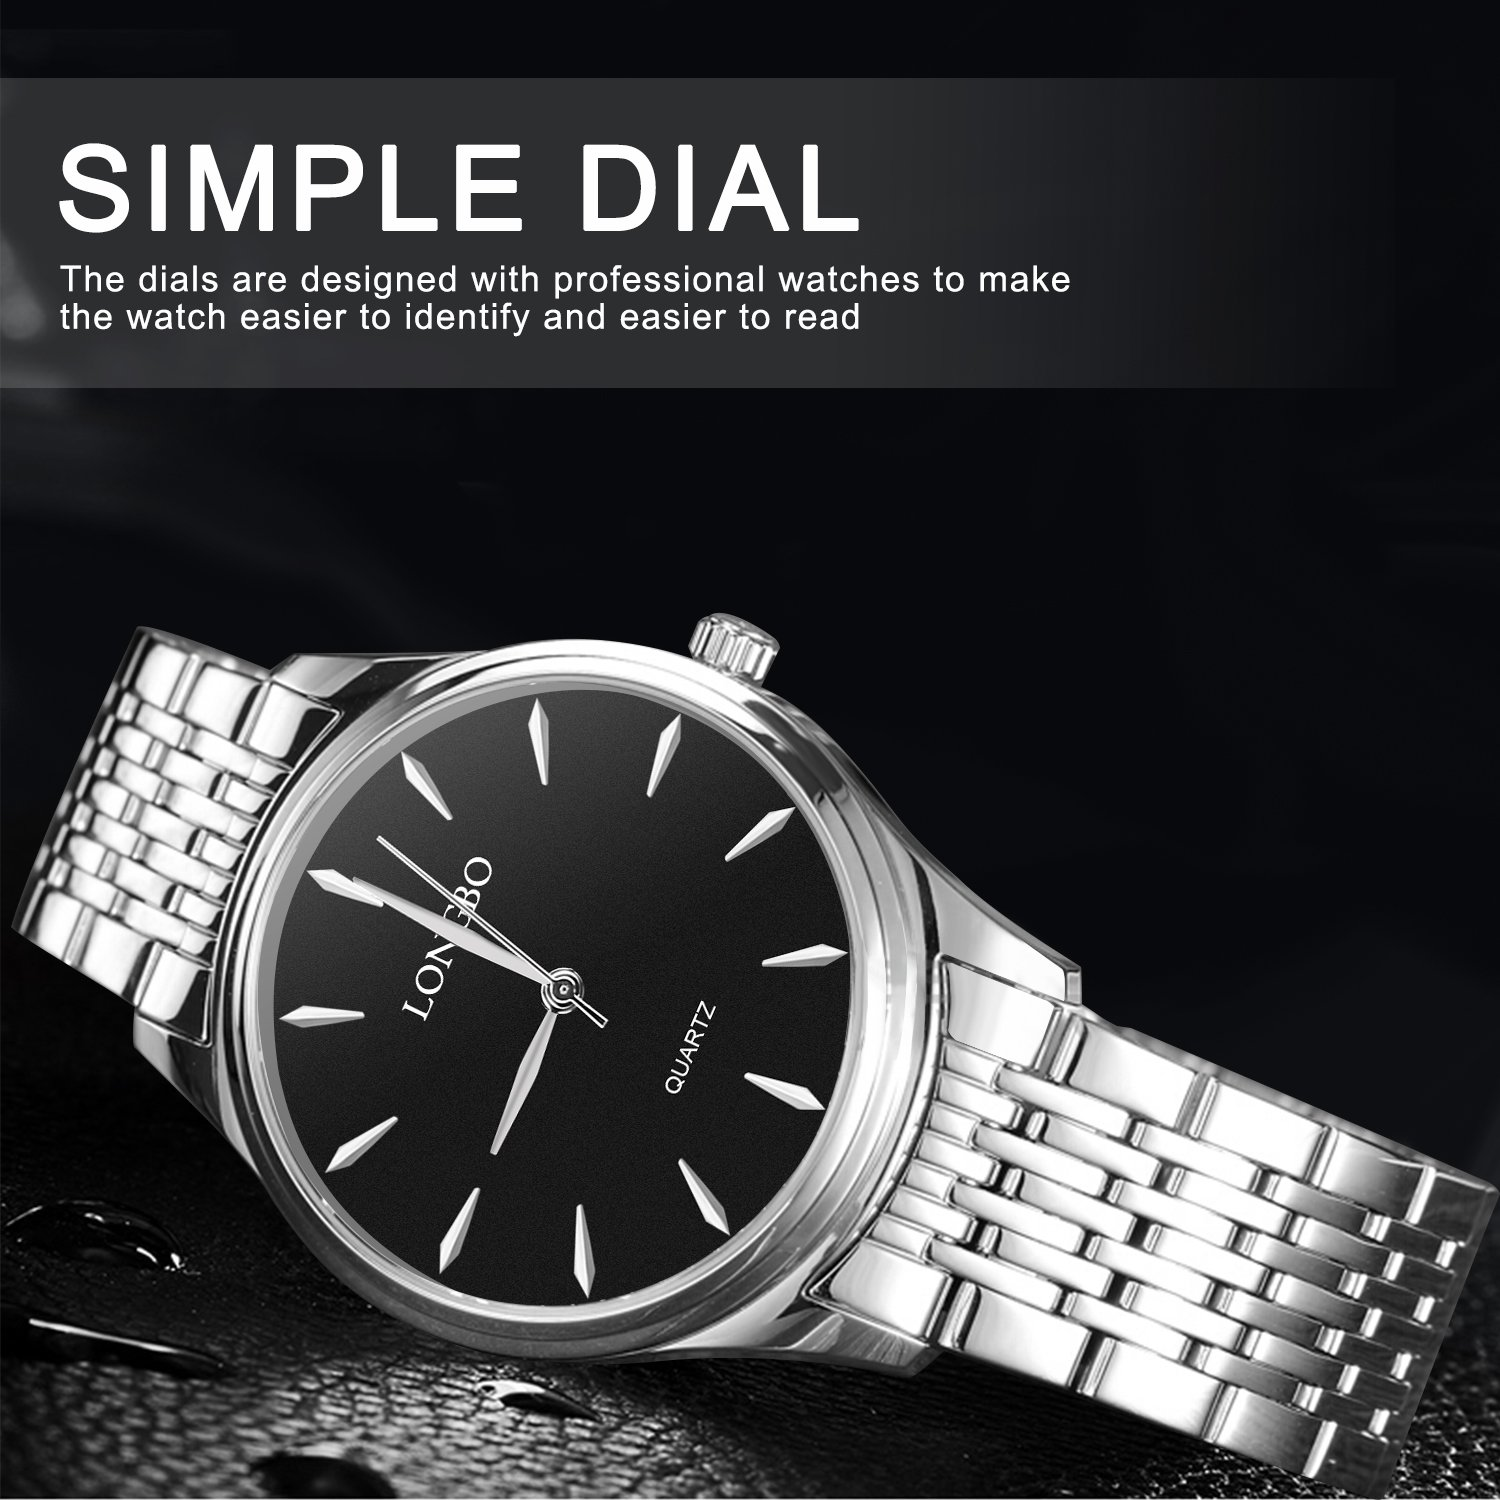 Mens Watches,LONGBO Couple Watches Stainless Steel Band Watch Dress Business Wrist Watches Fashion and Waterproof Watches for Men(Men)